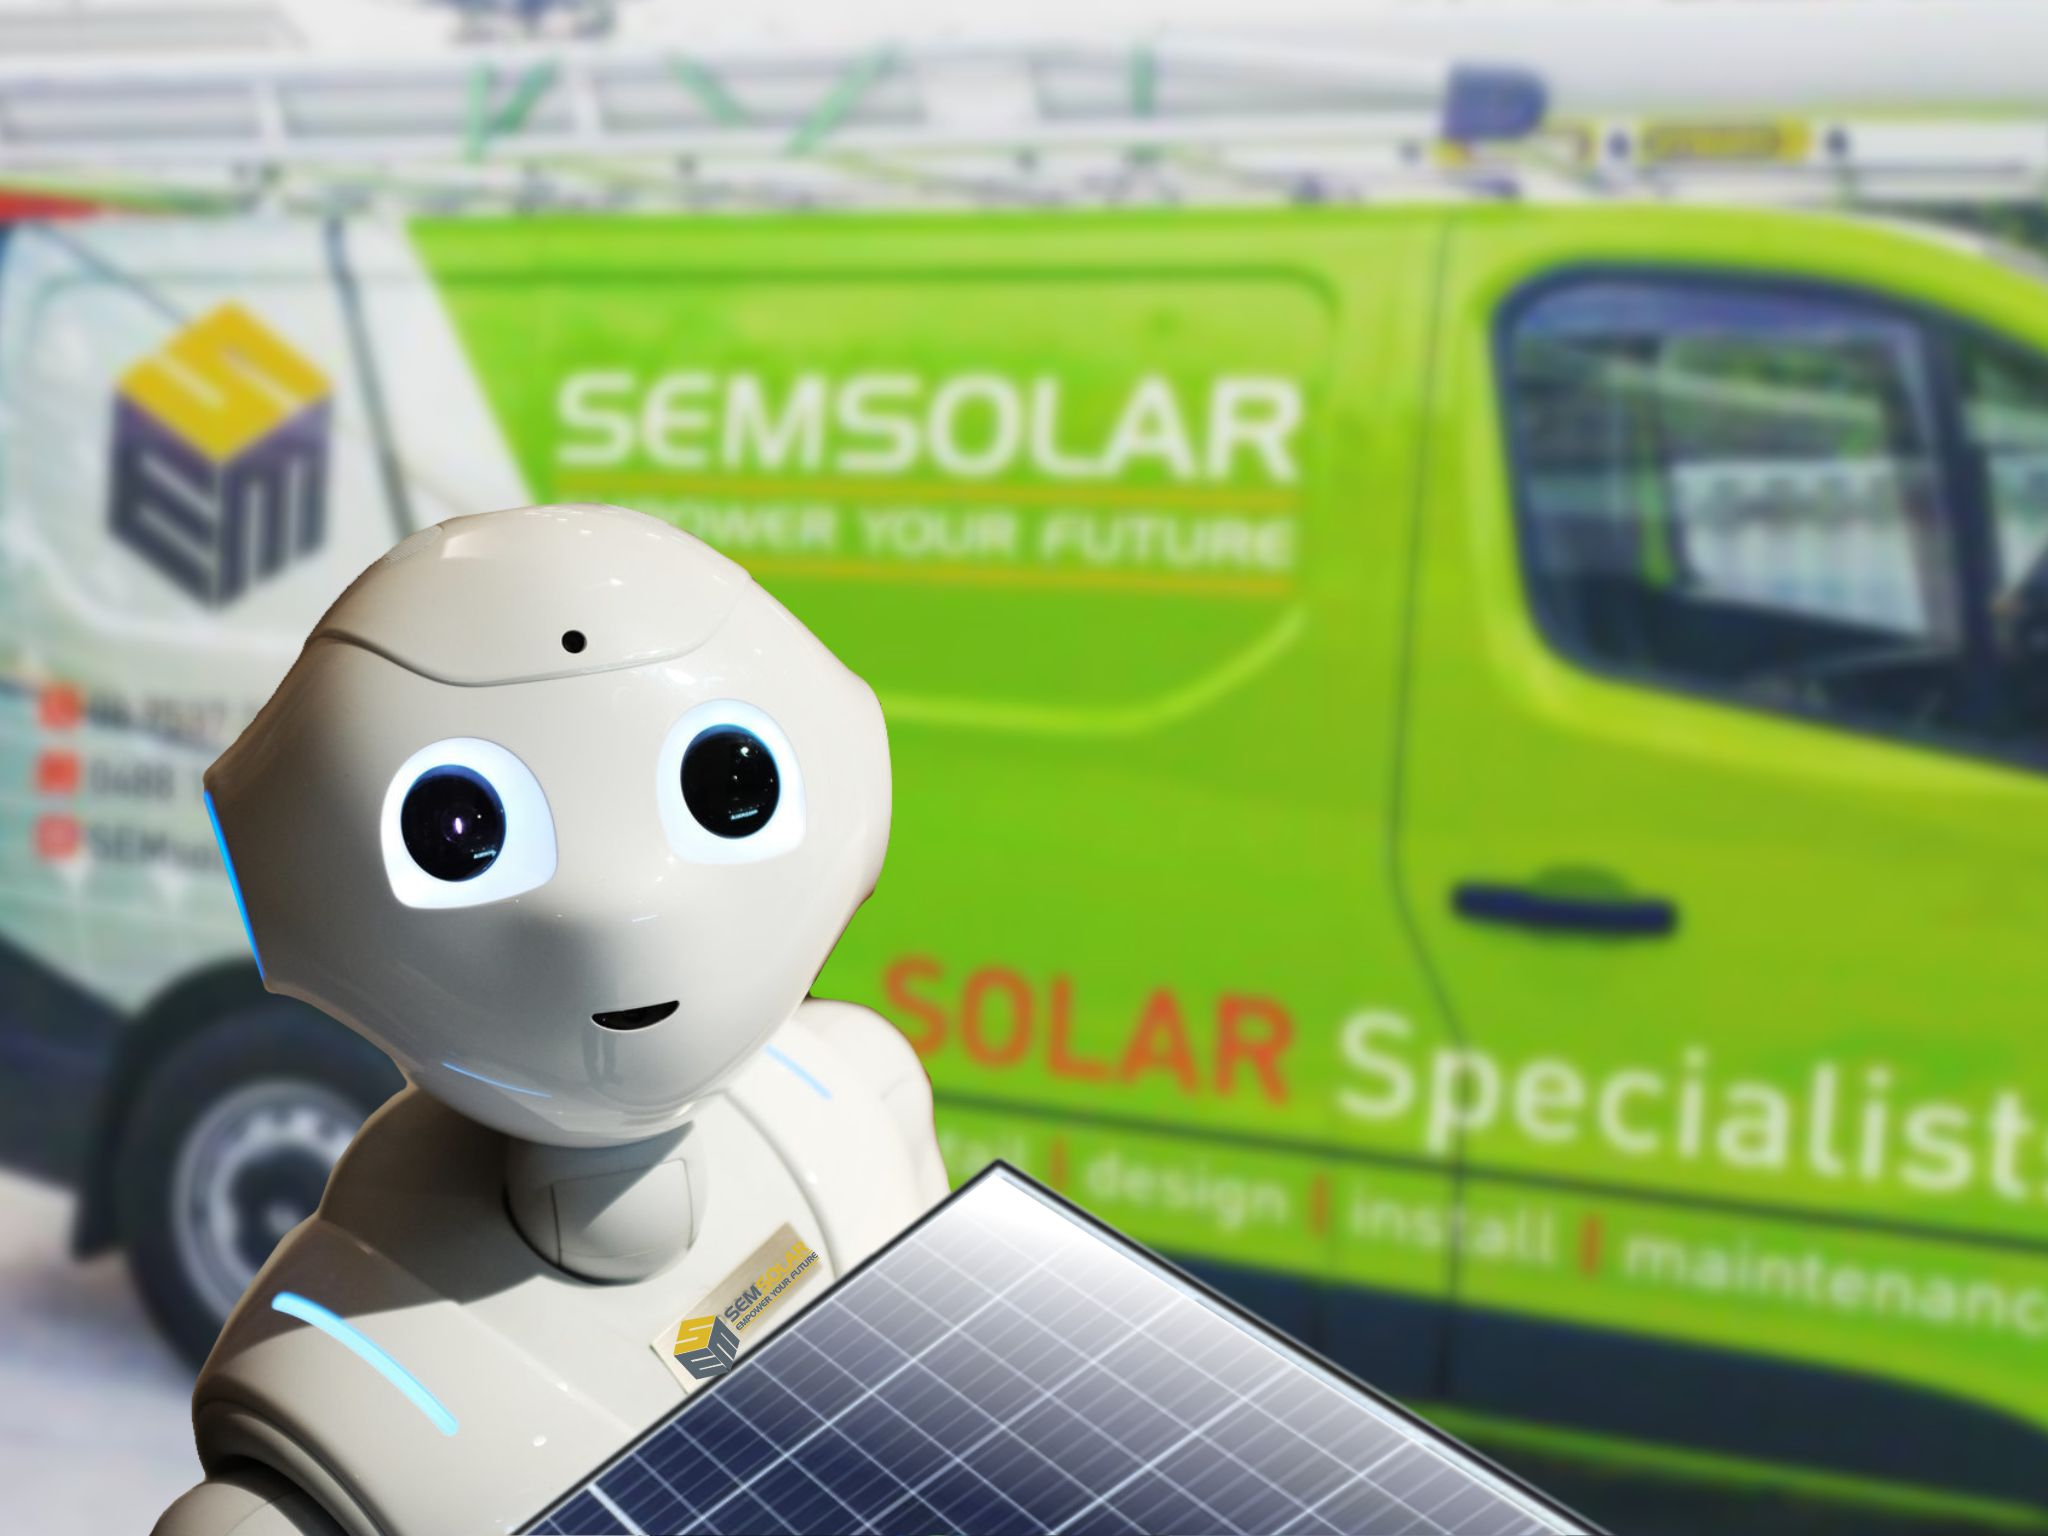 We're ready for the future - Empower your future with SEM Solar.